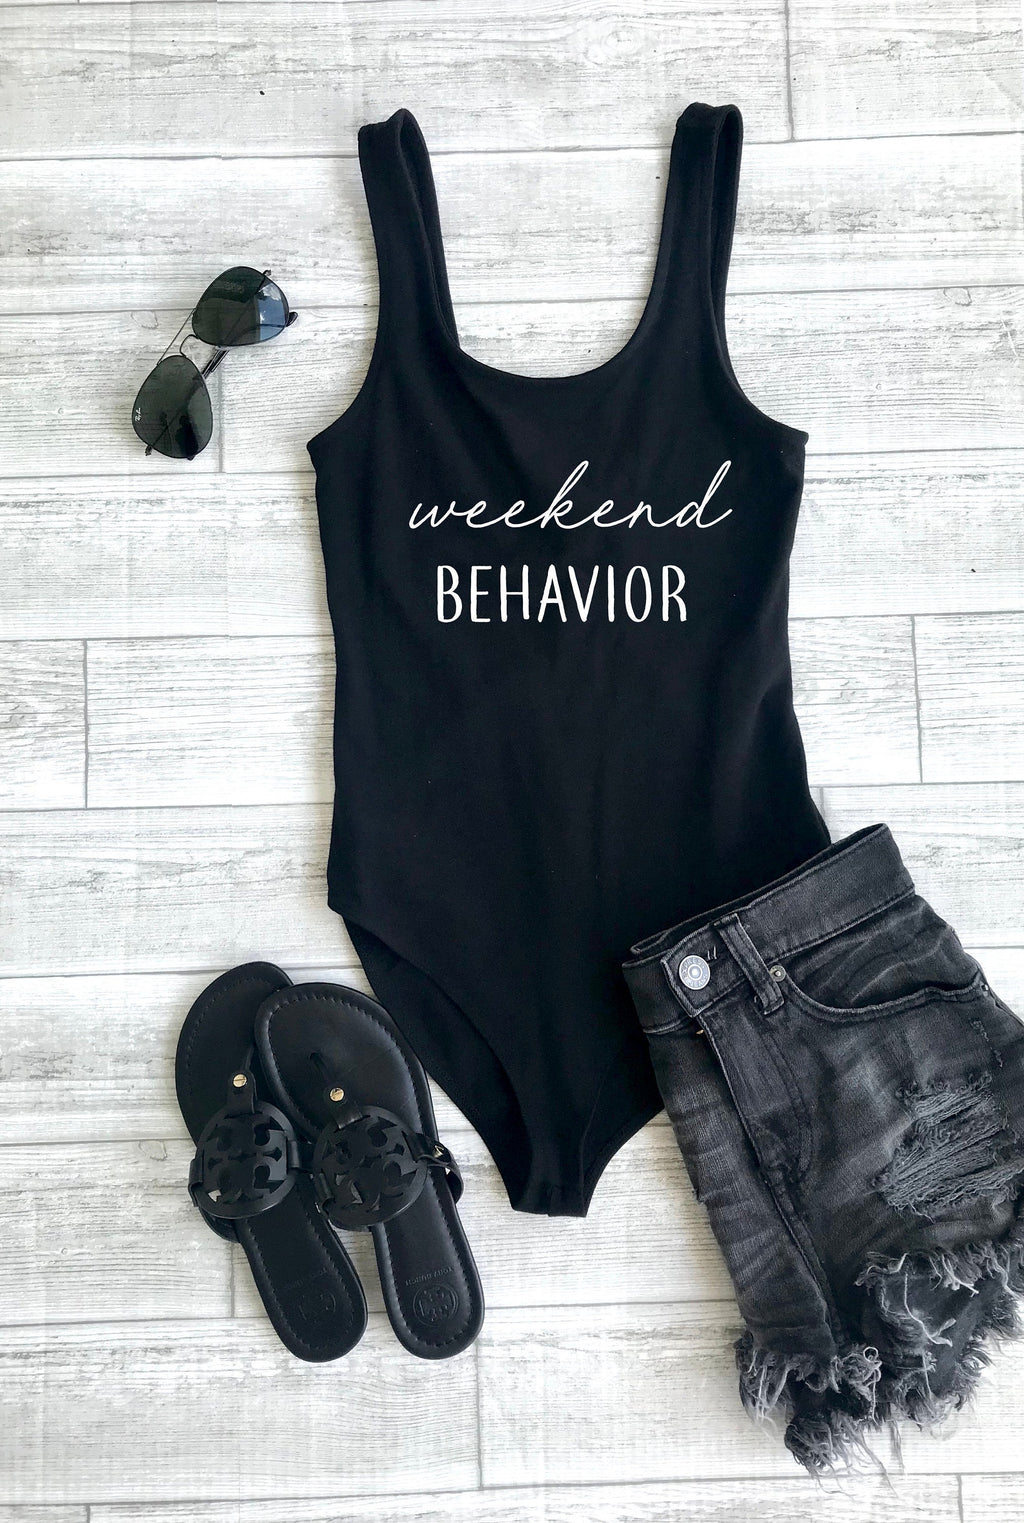 Weekend behavior, Cute women's outfit, cute summer outfit, going out outfit, club outfit, cute topsWomen's bodysuit, Cute women's bodysuit,